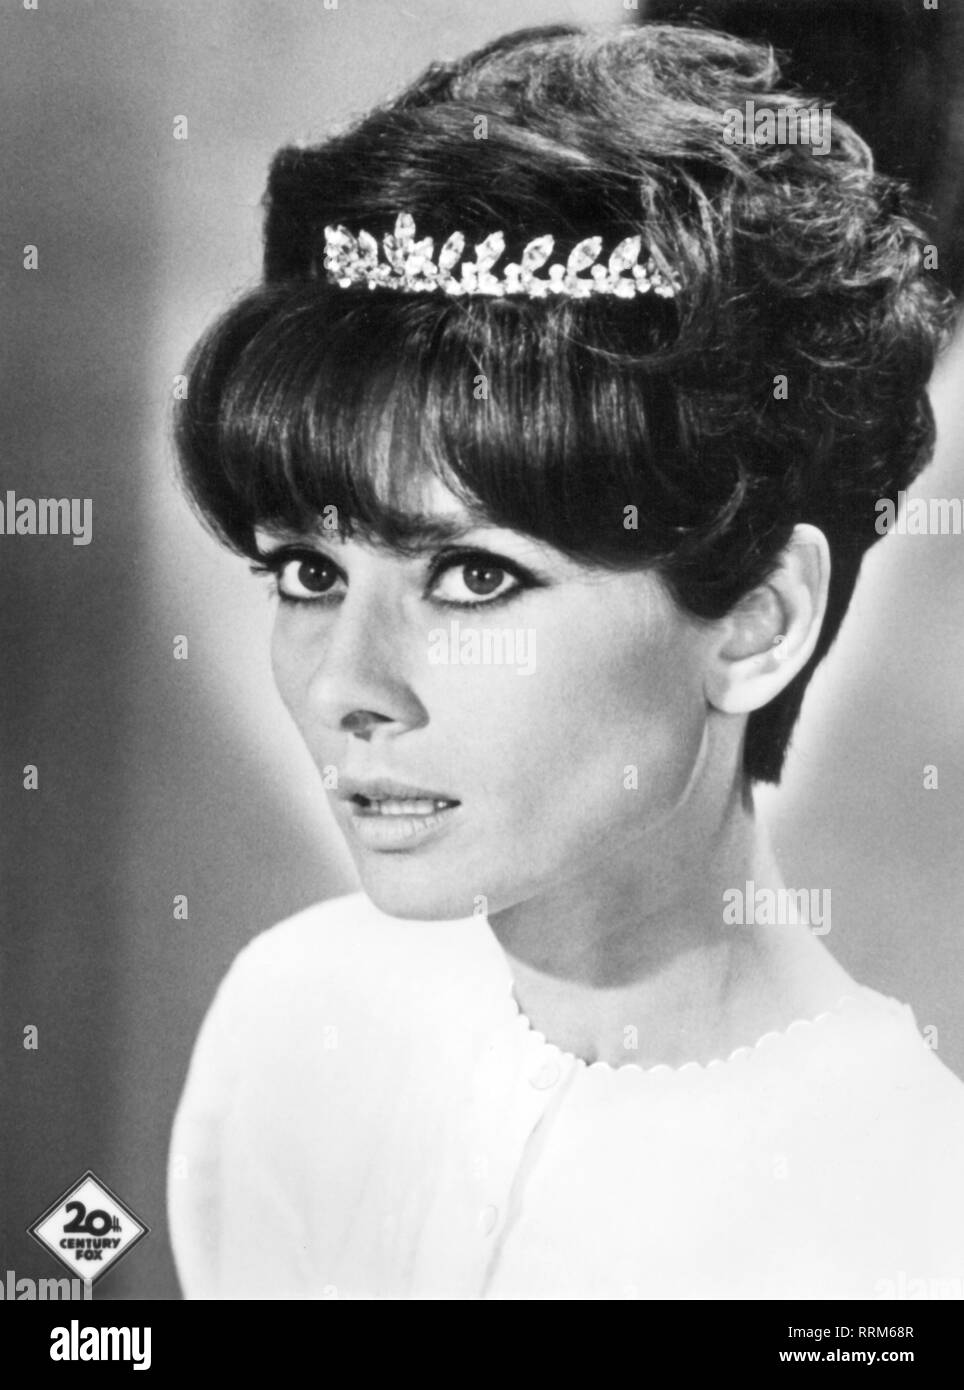 Hepburn, Audrey, 4.5.1929 - 20 1.1993, British actress, portrait, picture postcard, 1960s, Additional-Rights-Clearance-Info-Not-Available - Stock Image